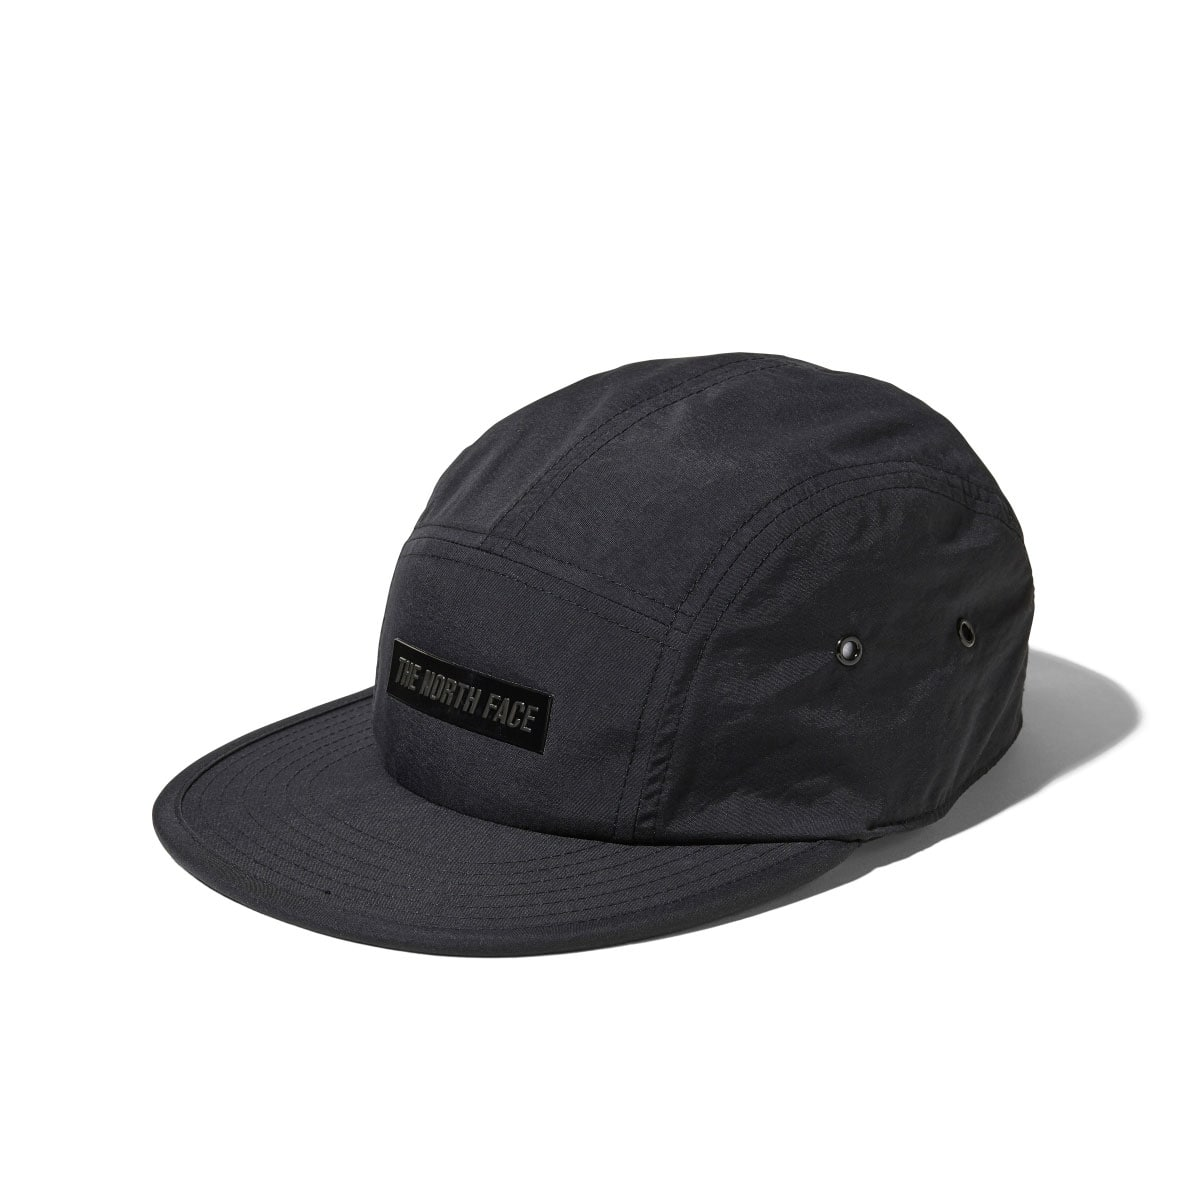 THE NORTH FACE FIVE PANEL CAP  ブラック2 19SS-I_photo_large